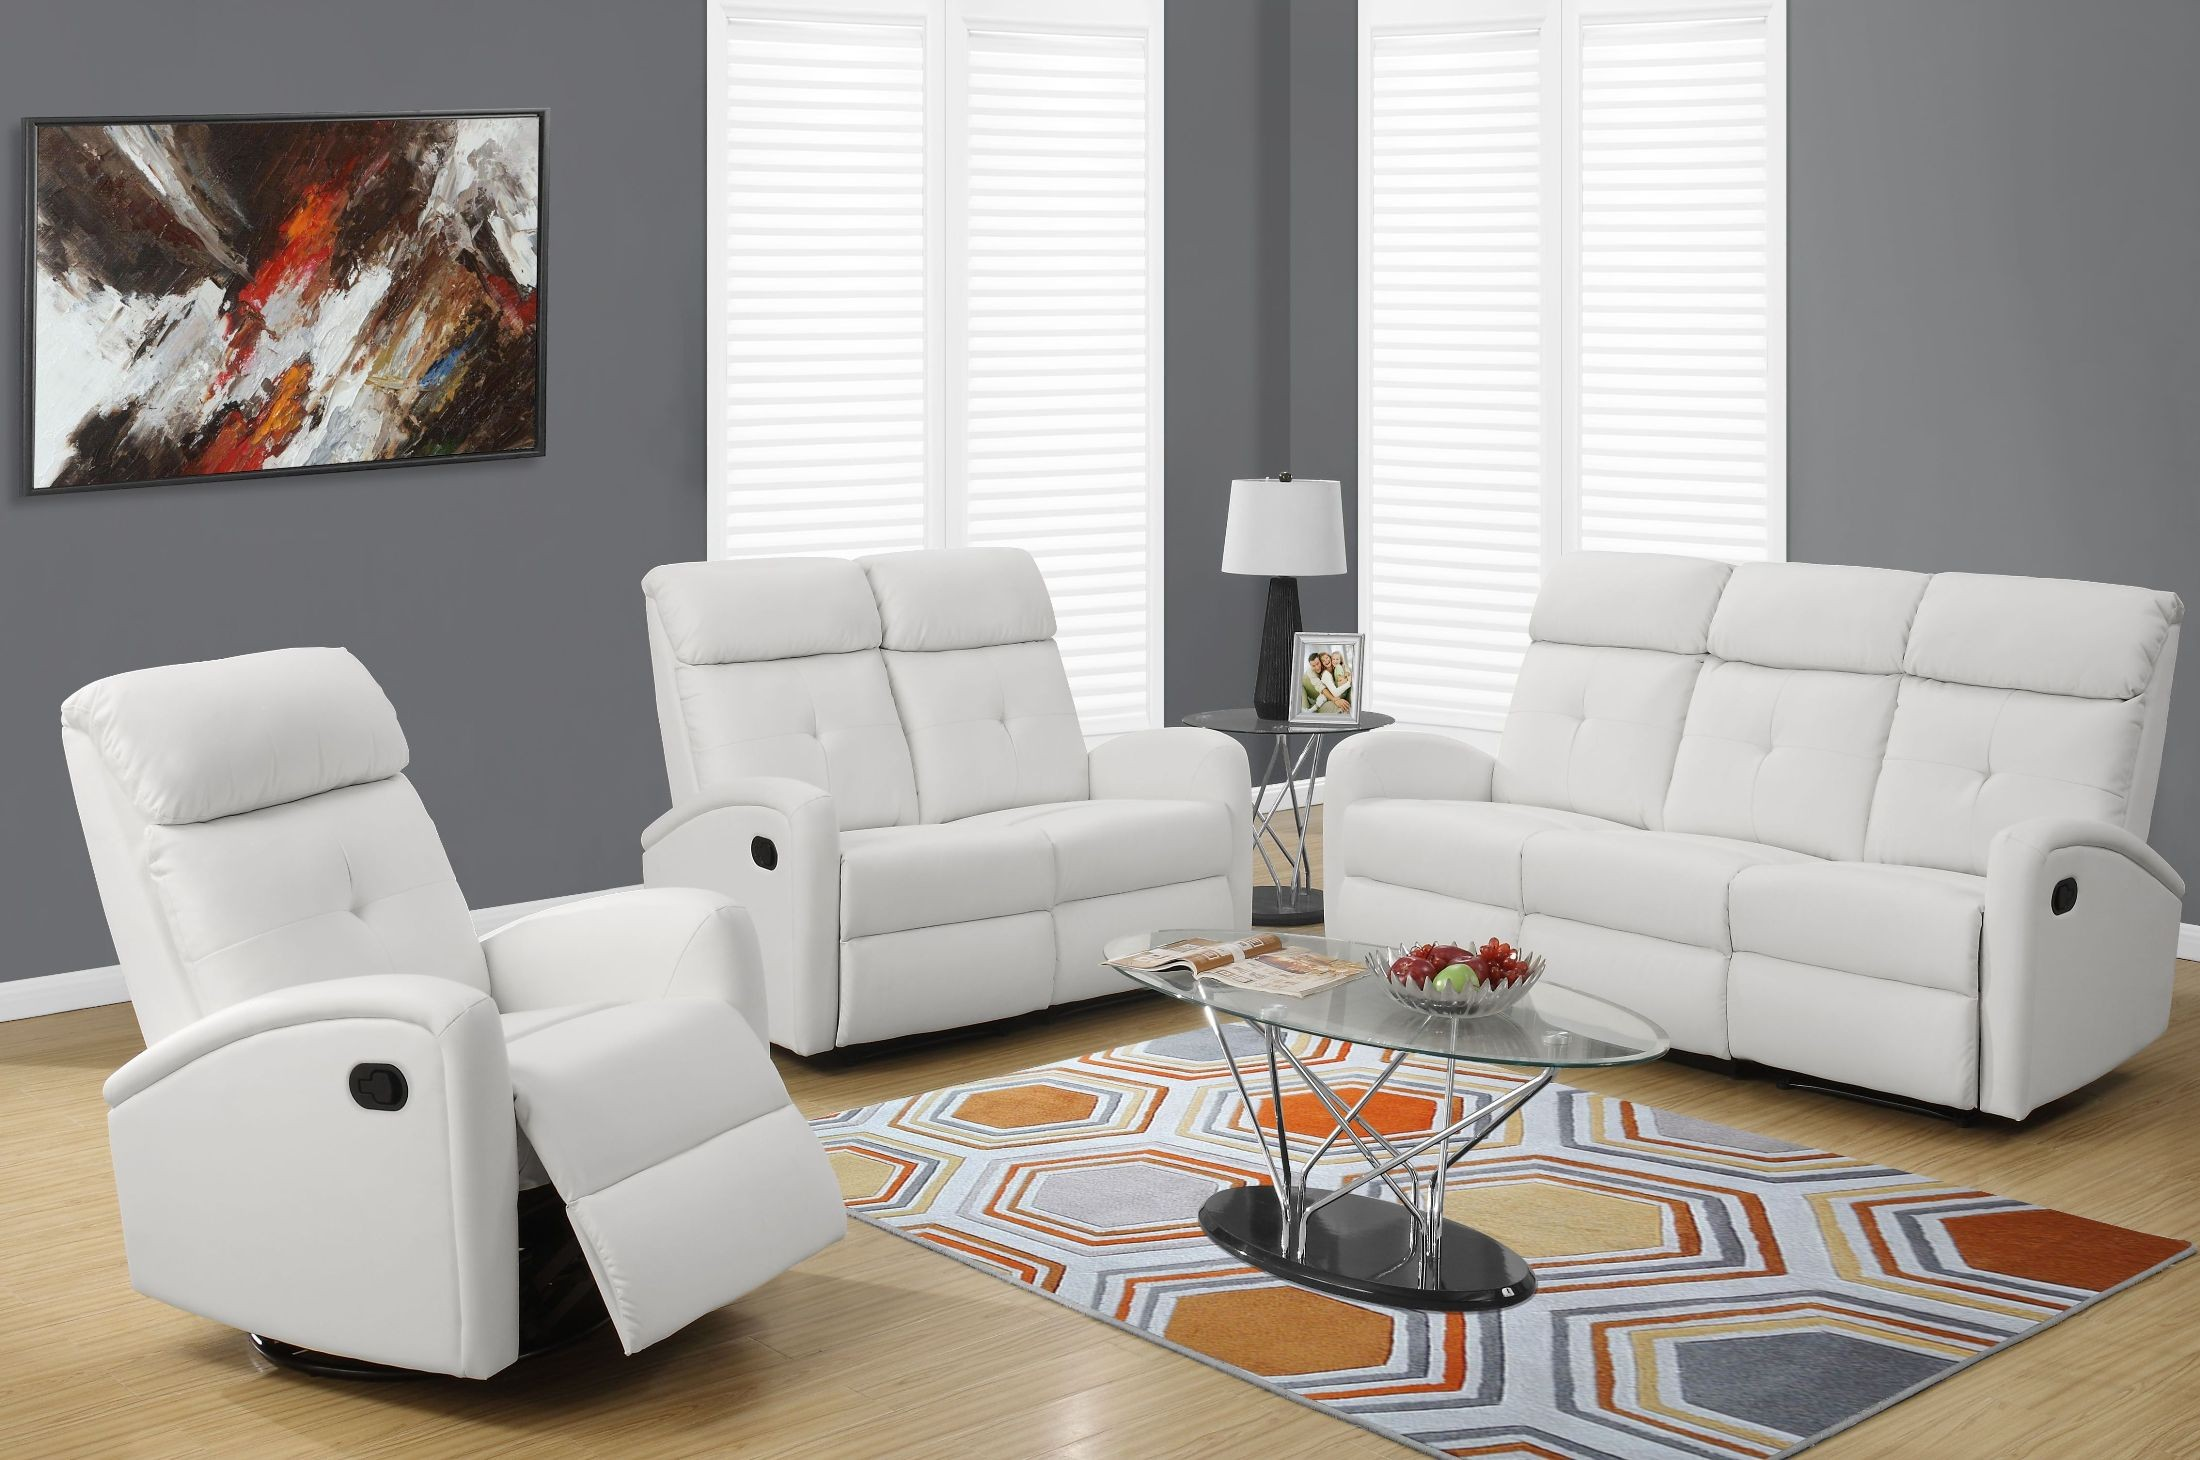 88wh 3 white bonded leather reclining living room set